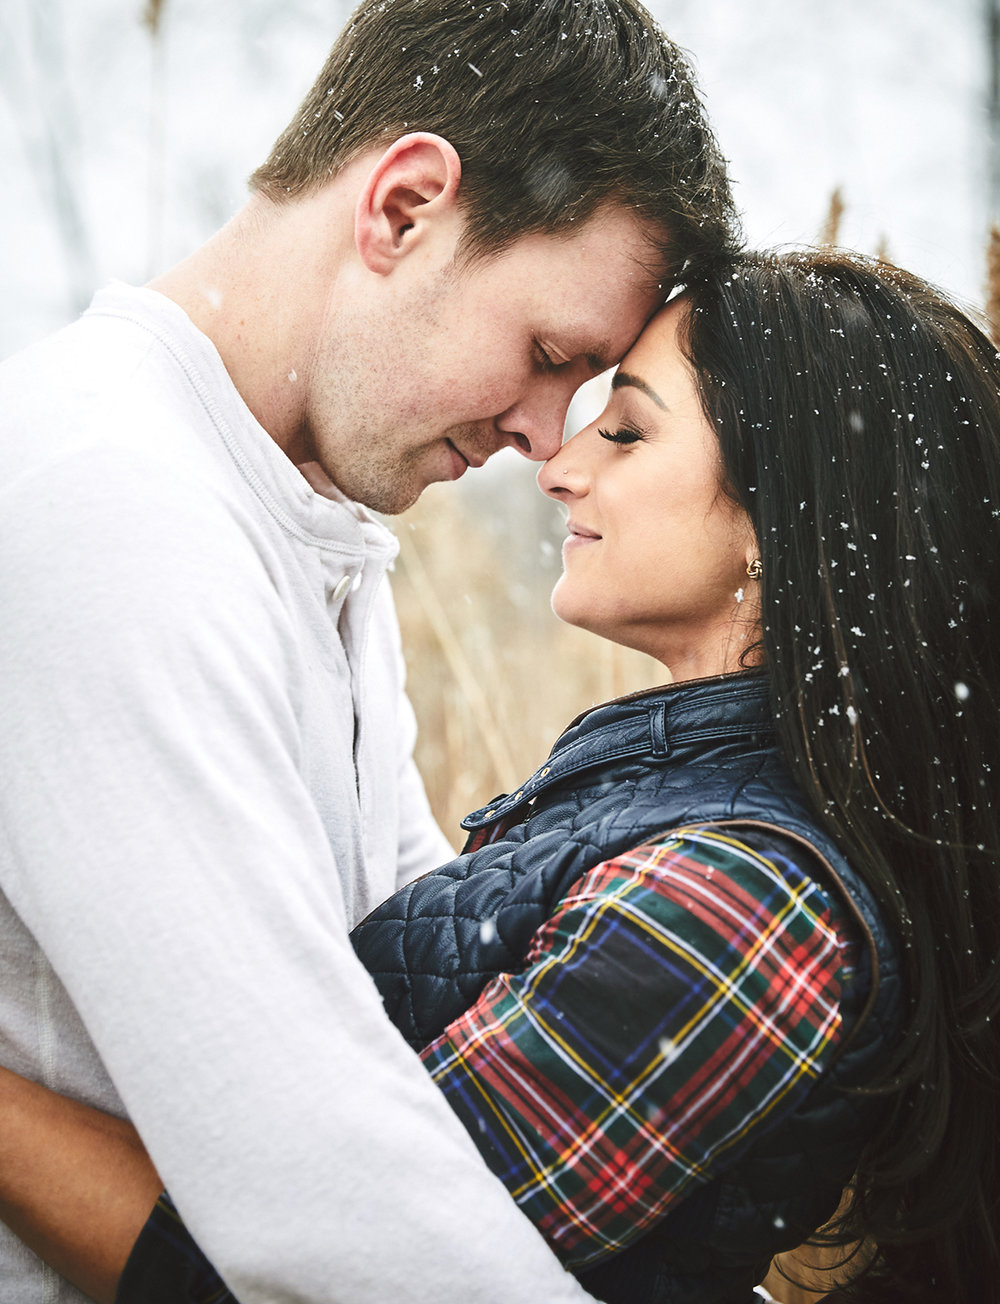 170114_LibertyStateParkEngagement_WinterEngagementPhotography_By_BriJohnsonWeddings0011.jpg